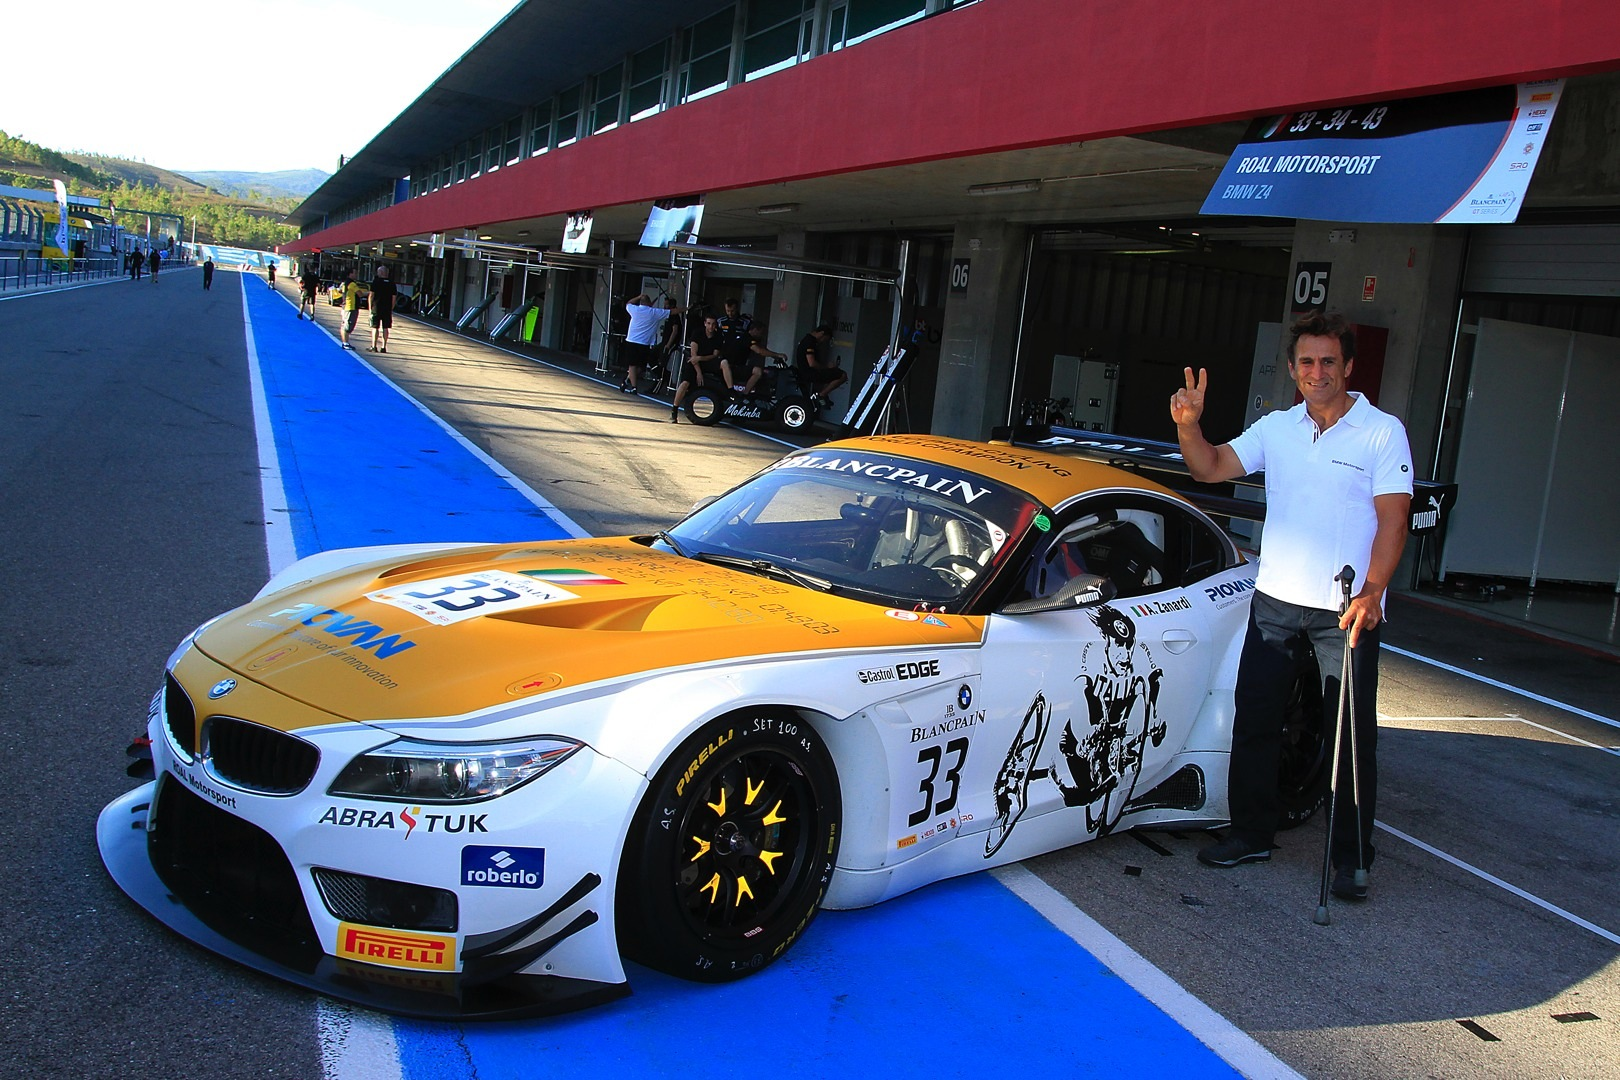 Golden Livery For Gold Medalist Alessandro Zanardi In